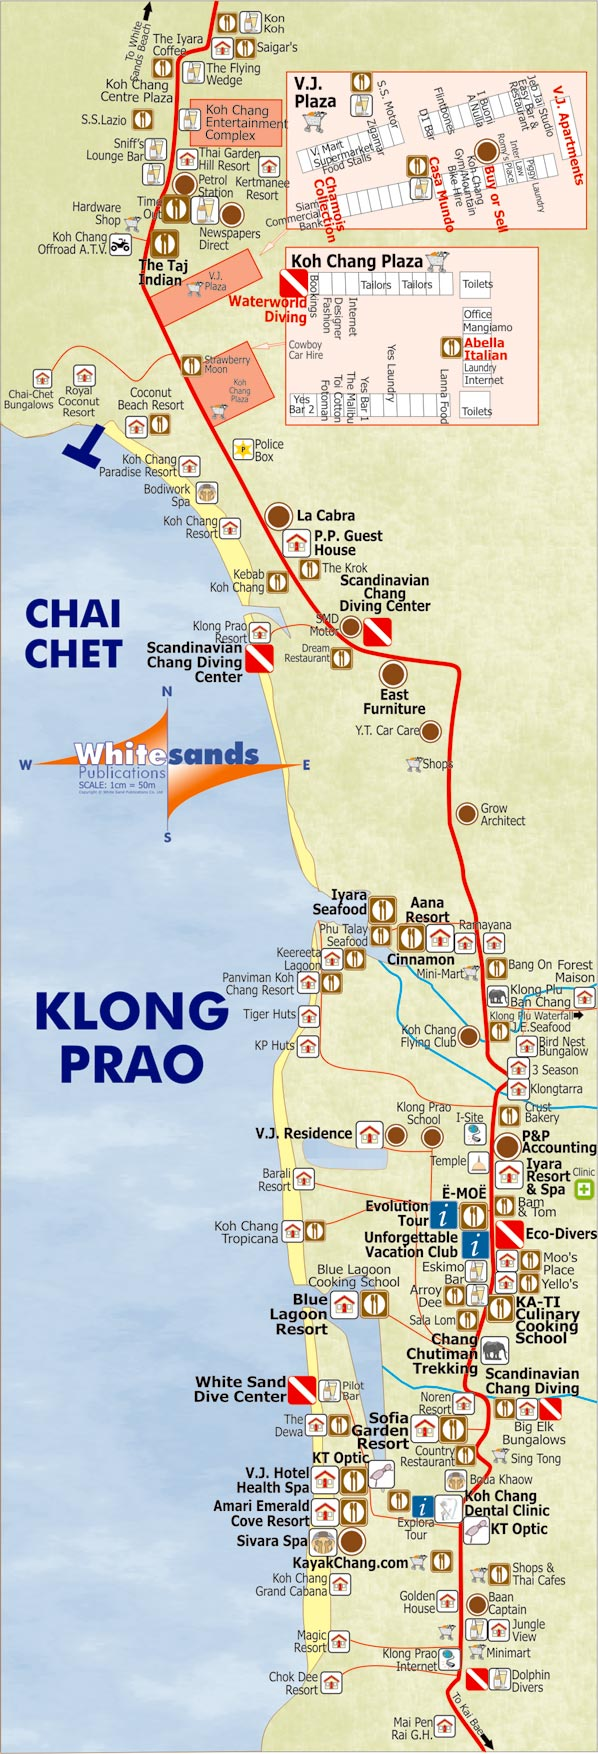 Top Koh Chang Tourist Attractions Map Photos - Printable Map - New ...